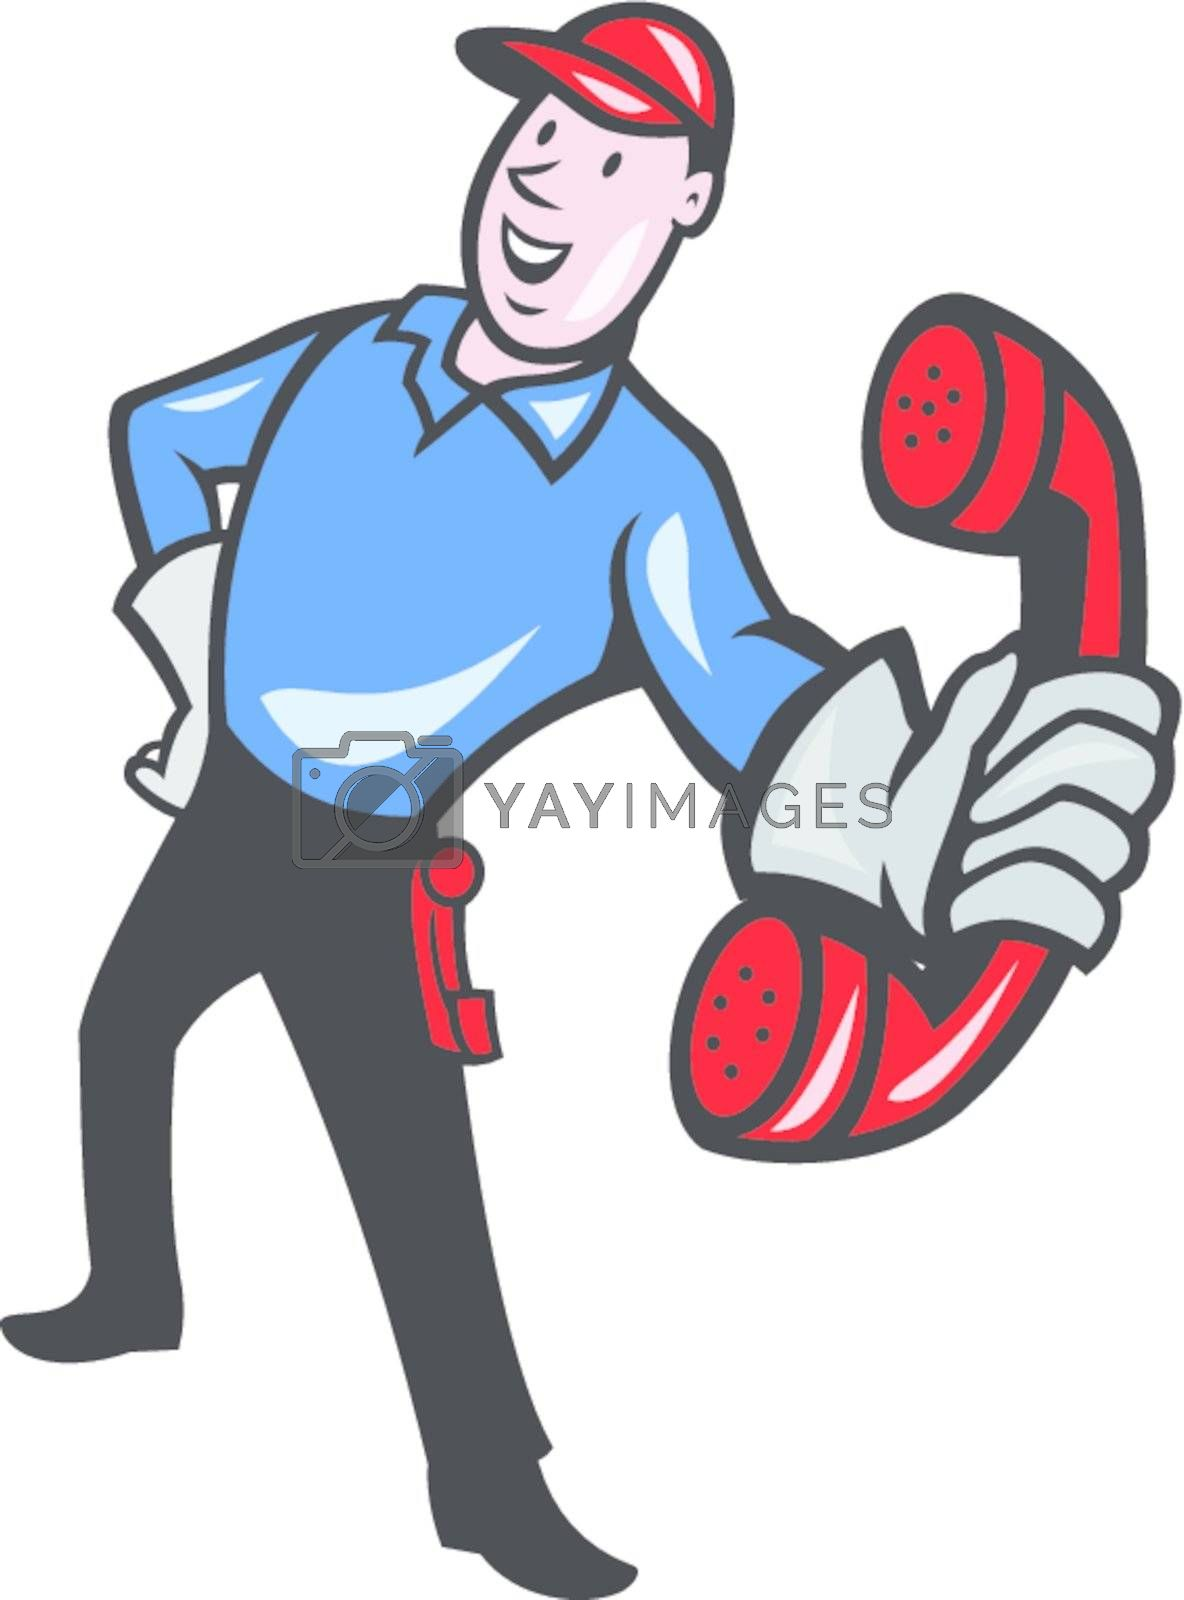 Illustration of telephone repairman worker tradesman holding out phone done in cartoon style on isolated white background